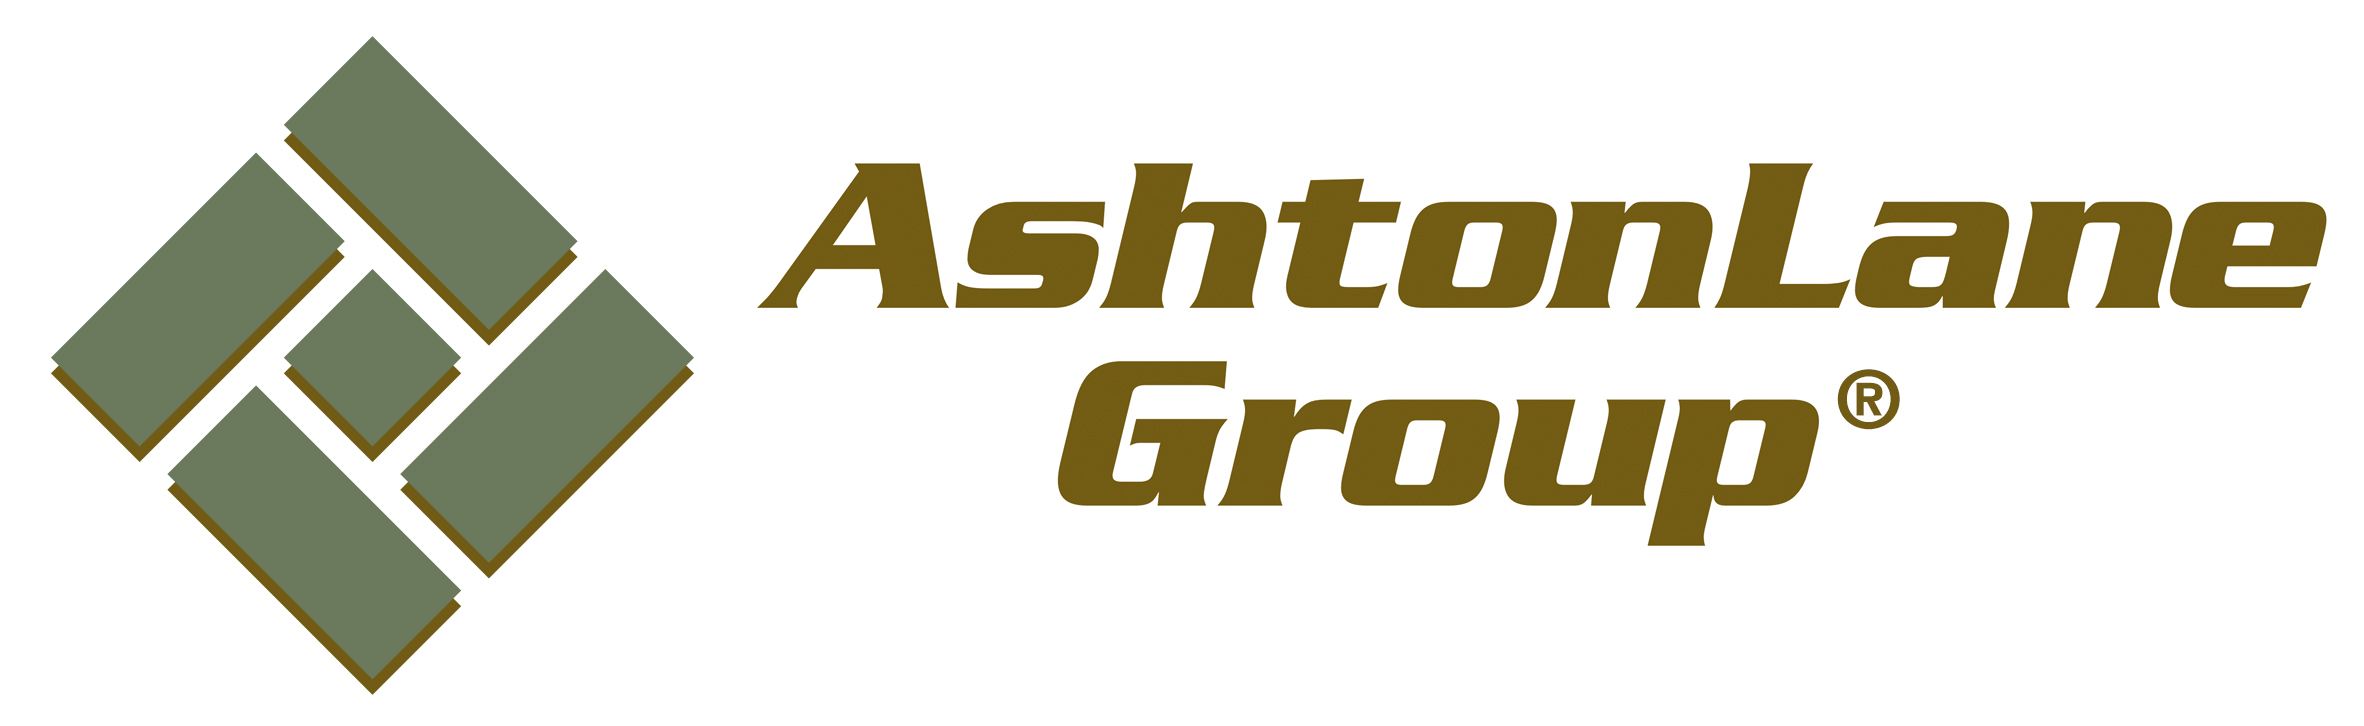 ashton lane group logo